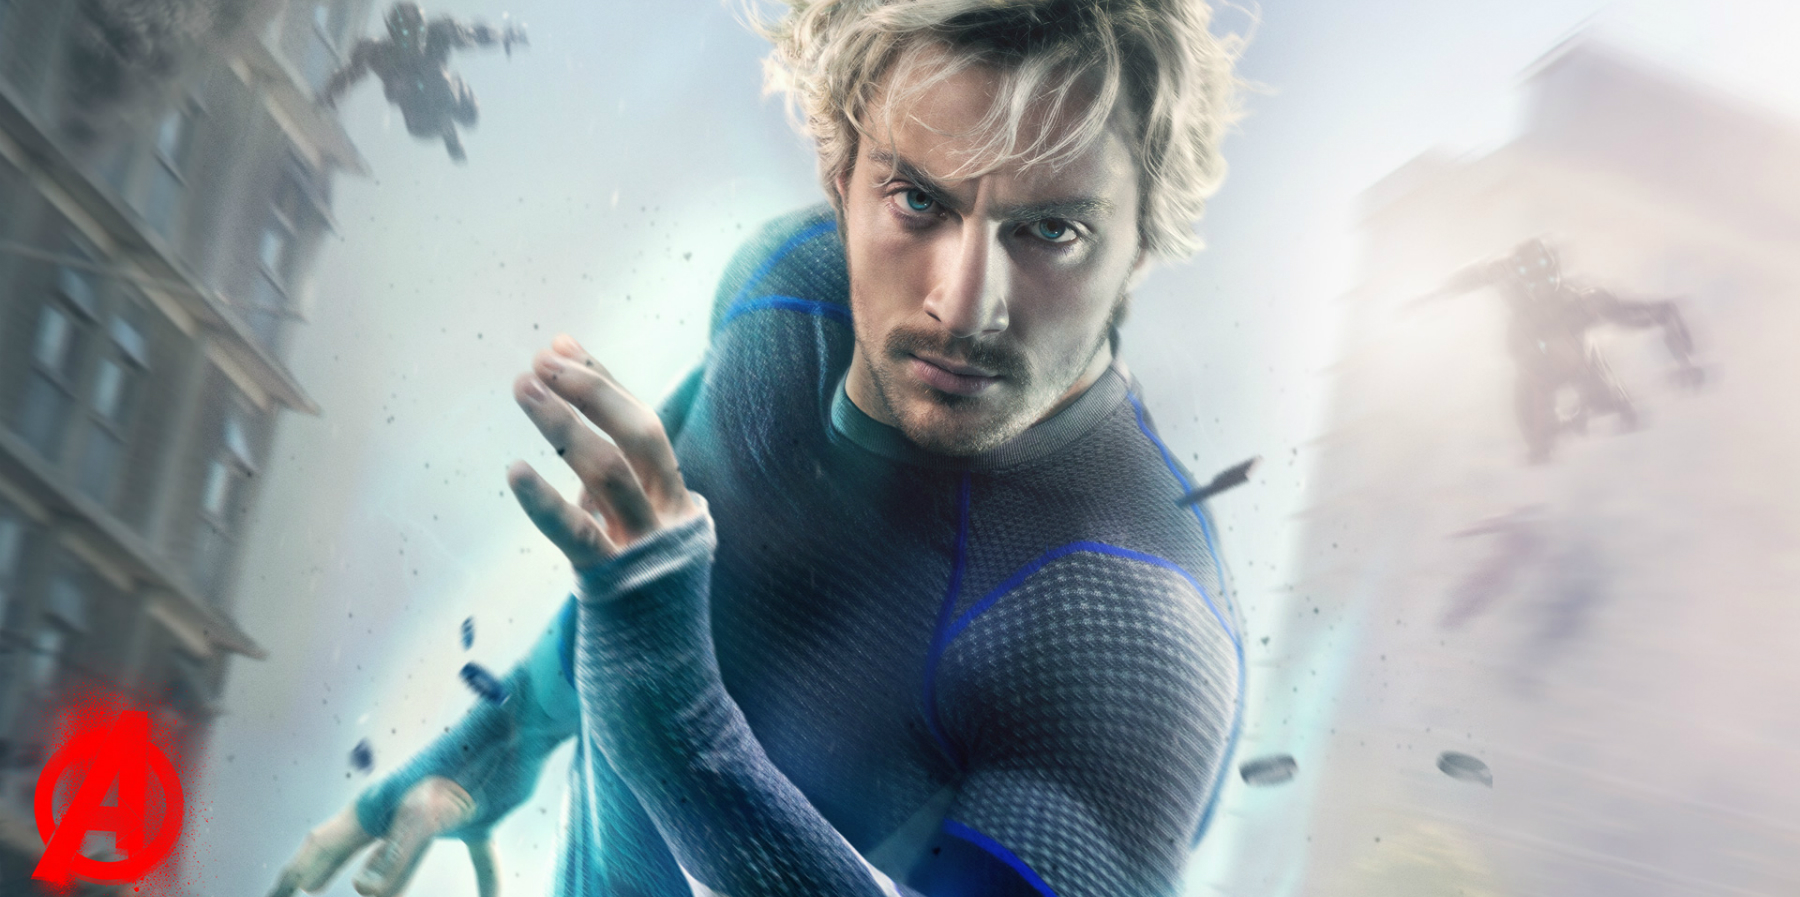 Aaron Taylor-Johnson Quicksilver poster for Avengers Age of Ultron